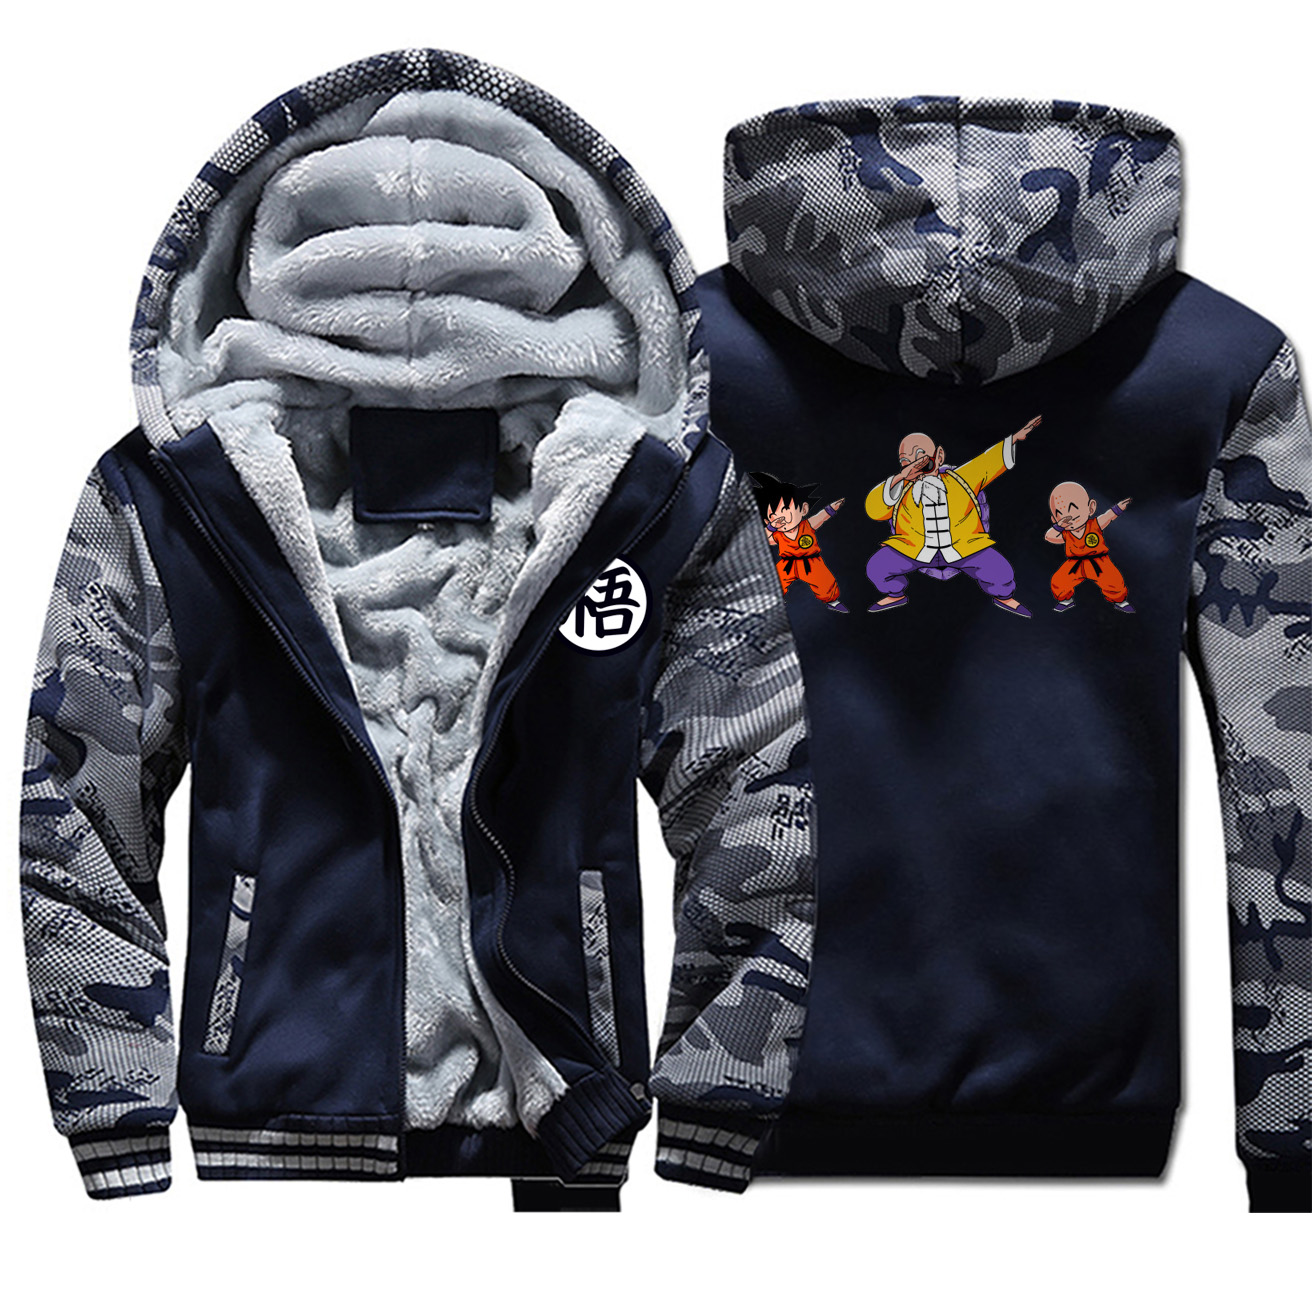 <font><b>Dragon</b></font> <font><b>Ball</b></font> <font><b>Z</b></font> <font><b>Jacket</b></font> Men Hoodies Sweatshirt 2019 Funny Japan Anime <font><b>Goku</b></font> Thick Coats Hip Hop Winter Streetwear Mens <font><b>Jackets</b></font> Coat image